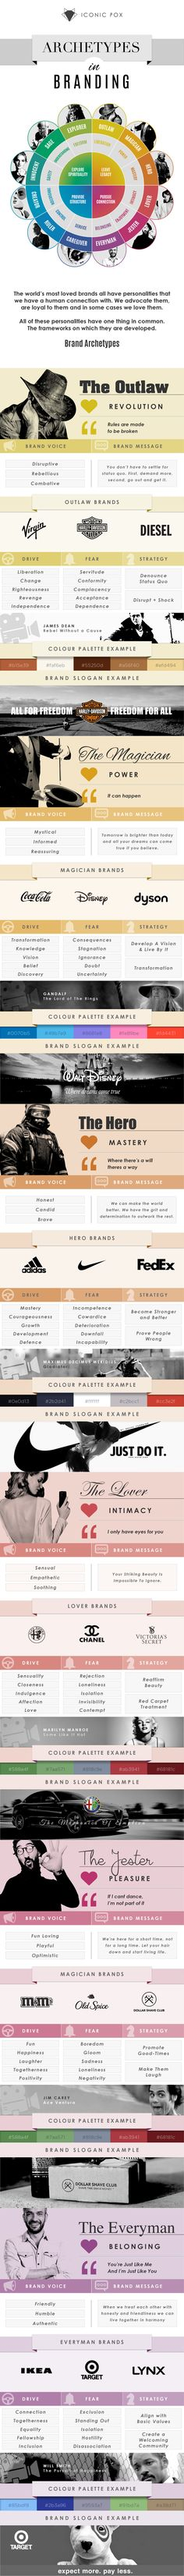 We all have a connection to a brand to the point that the alternative just won't cut it. Whatever yours is, that brand has connected with you on an emotional level through a tried and trusted framework. Brand Archetypes.